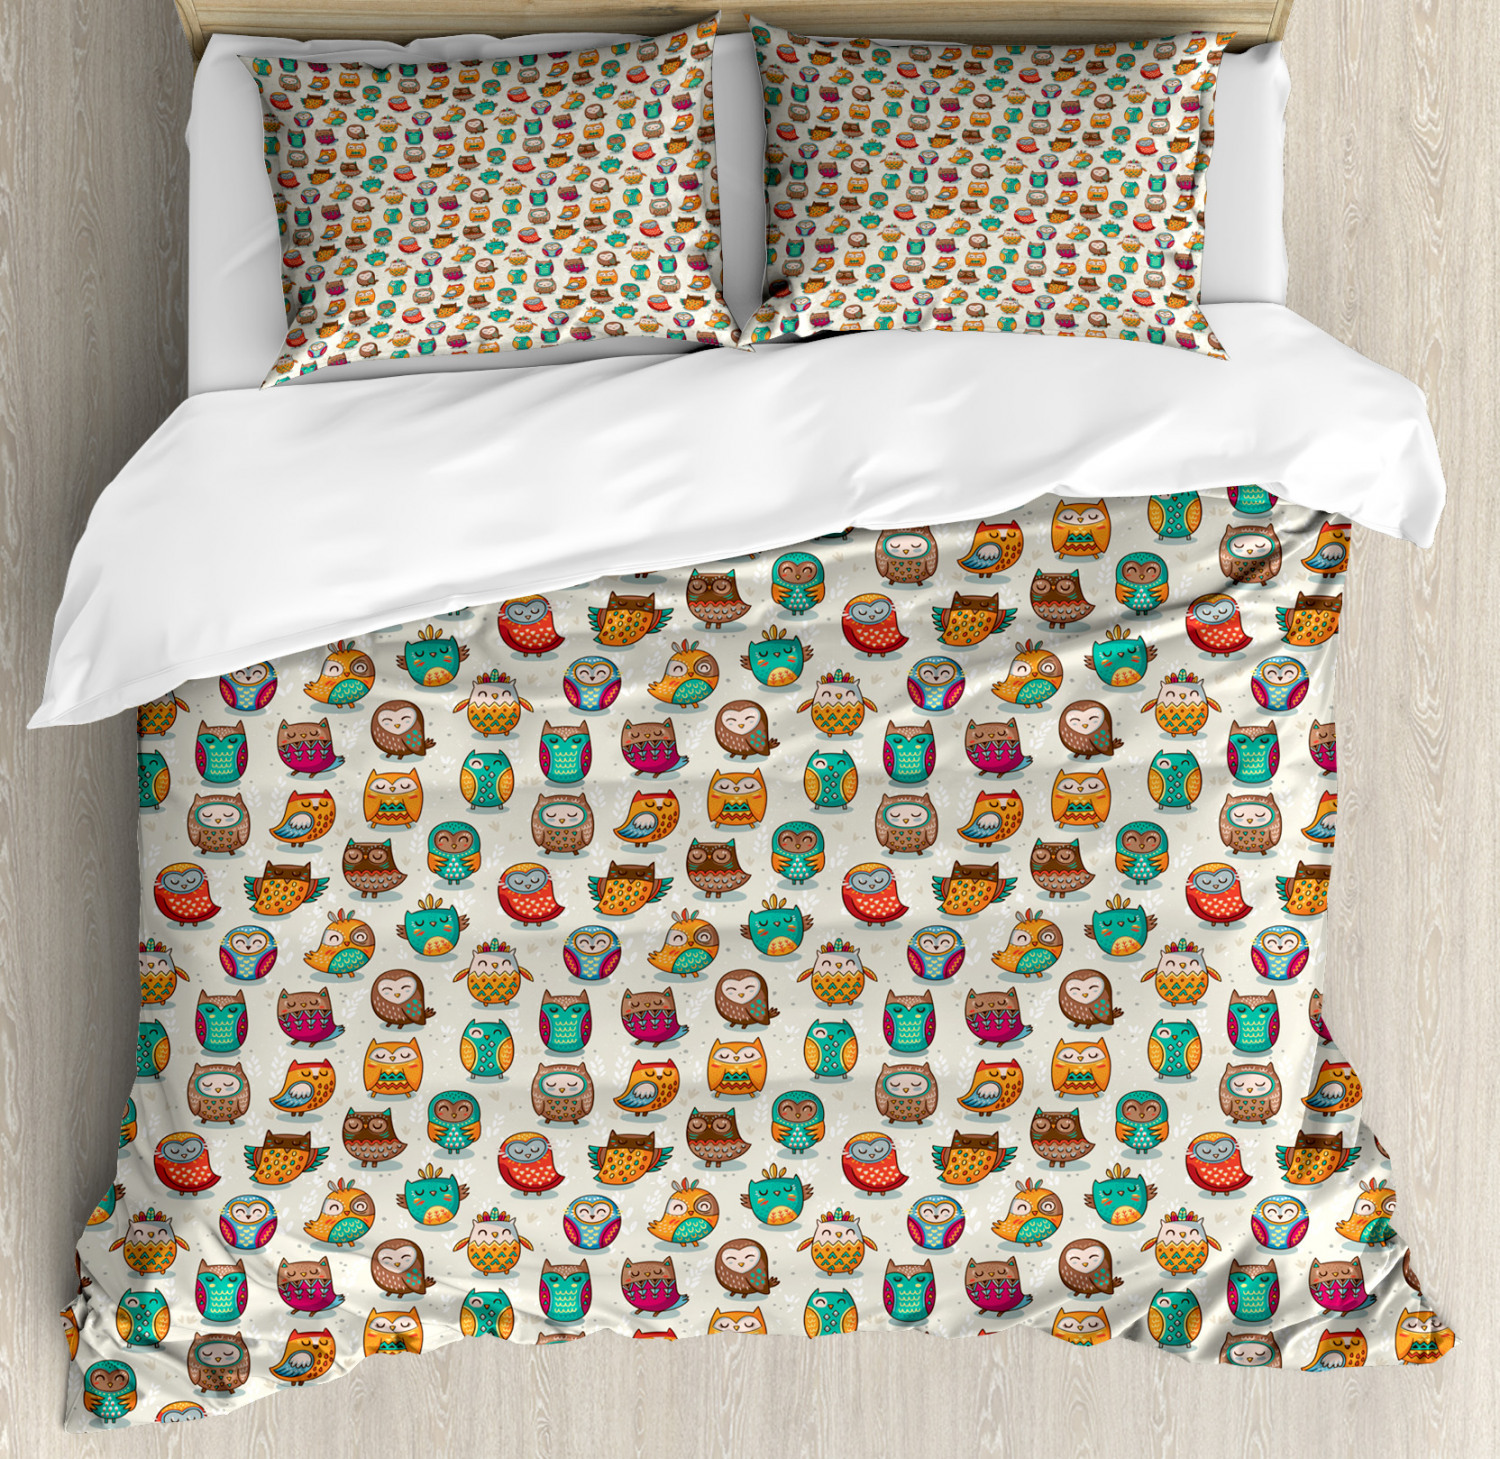 Owls Duvet Cover Set with Pillow Shams Cheerful Cartoon Native Print